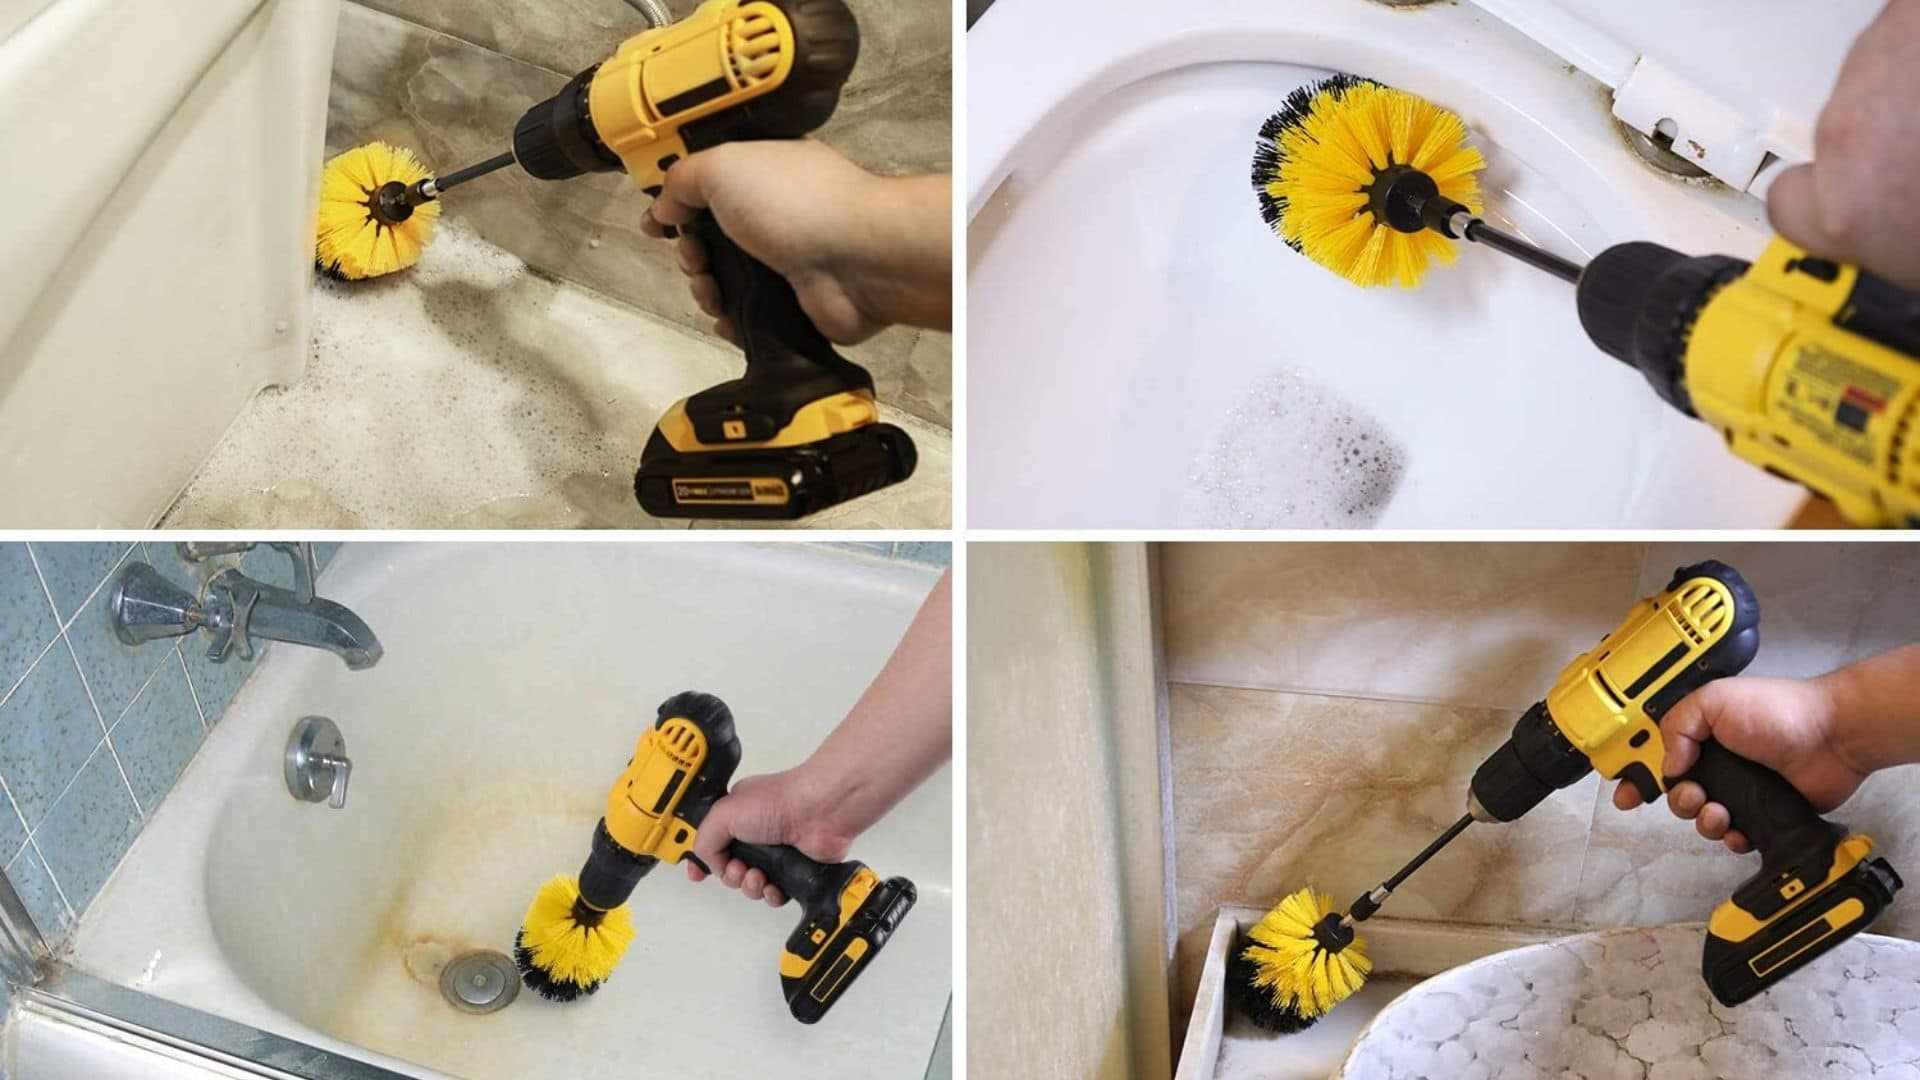 image of HIWARE Drill Brush Attachment Set being used to clean different surfaces